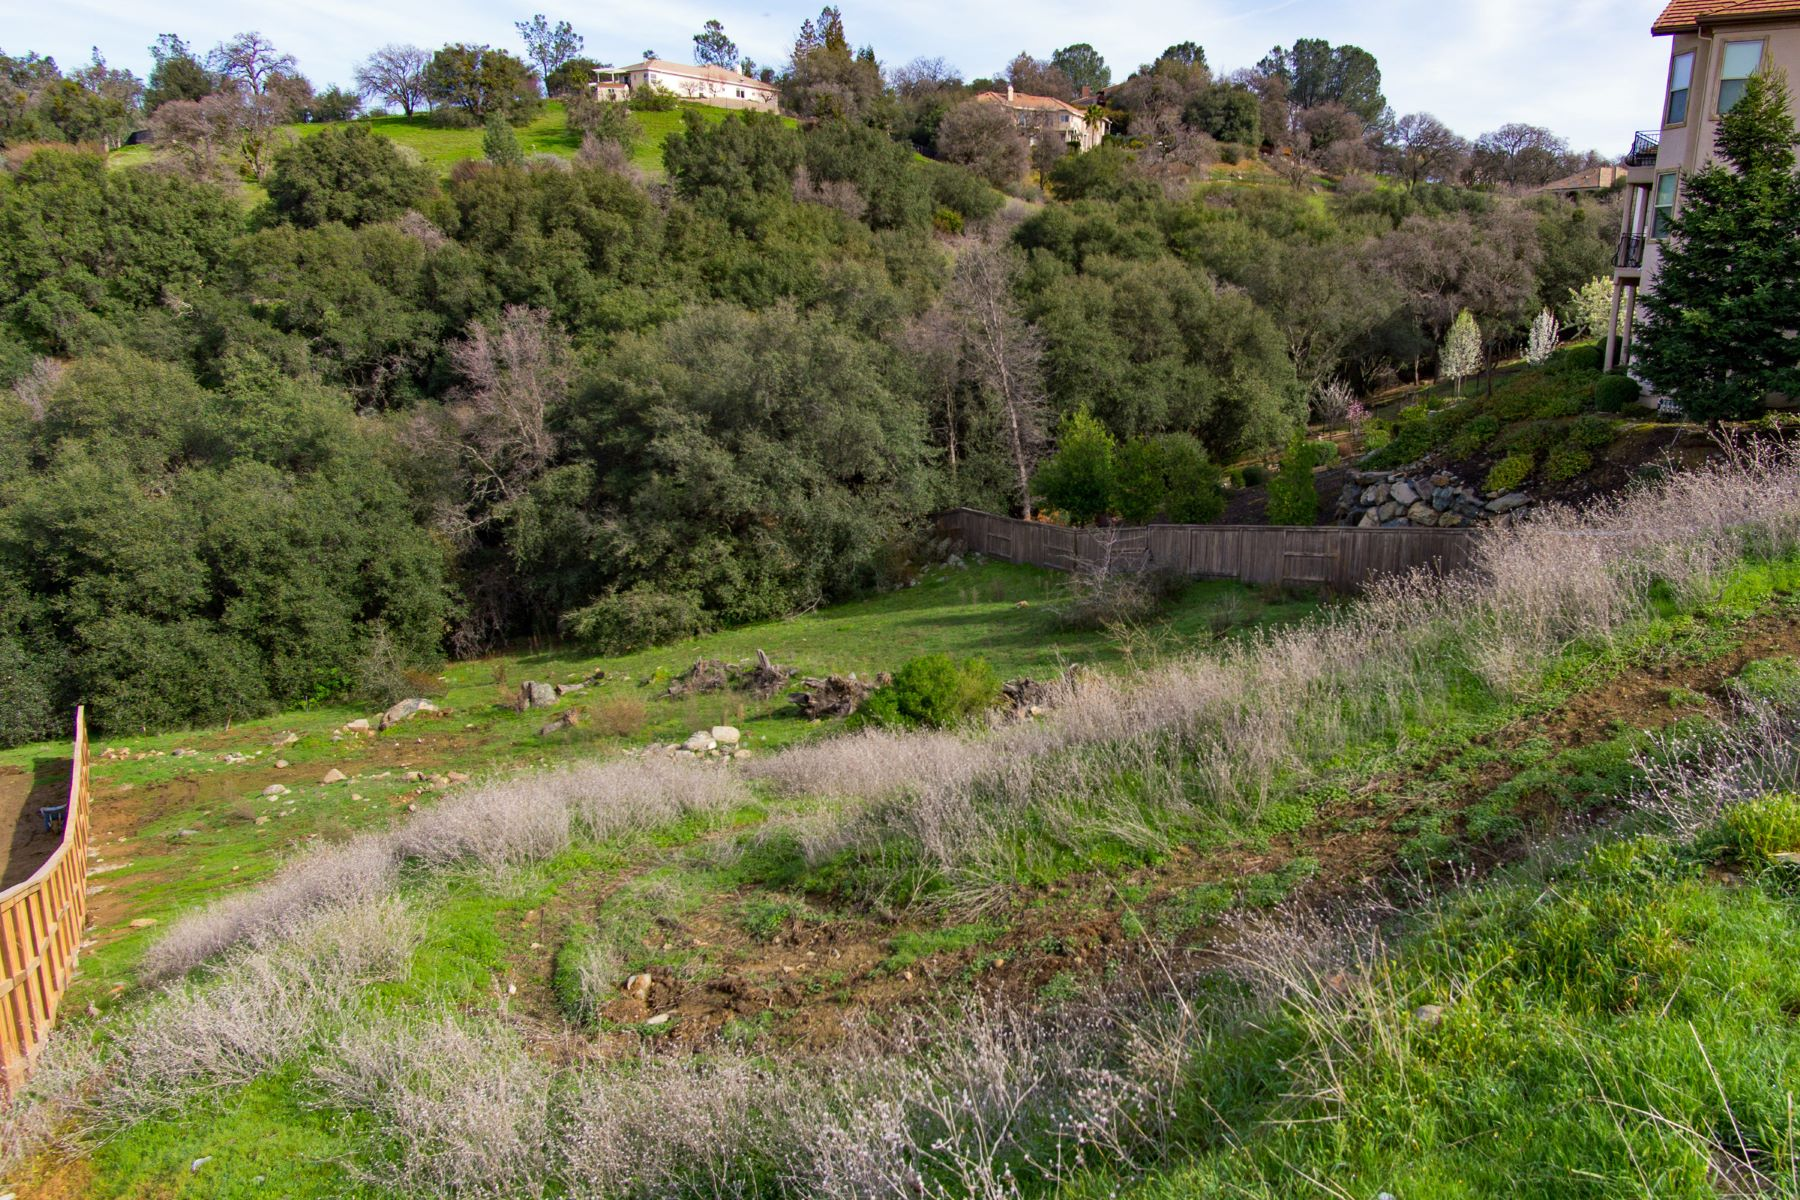 Land for Sale at 3141 Corsica Drive El Dorado Hills, California 95762 United States